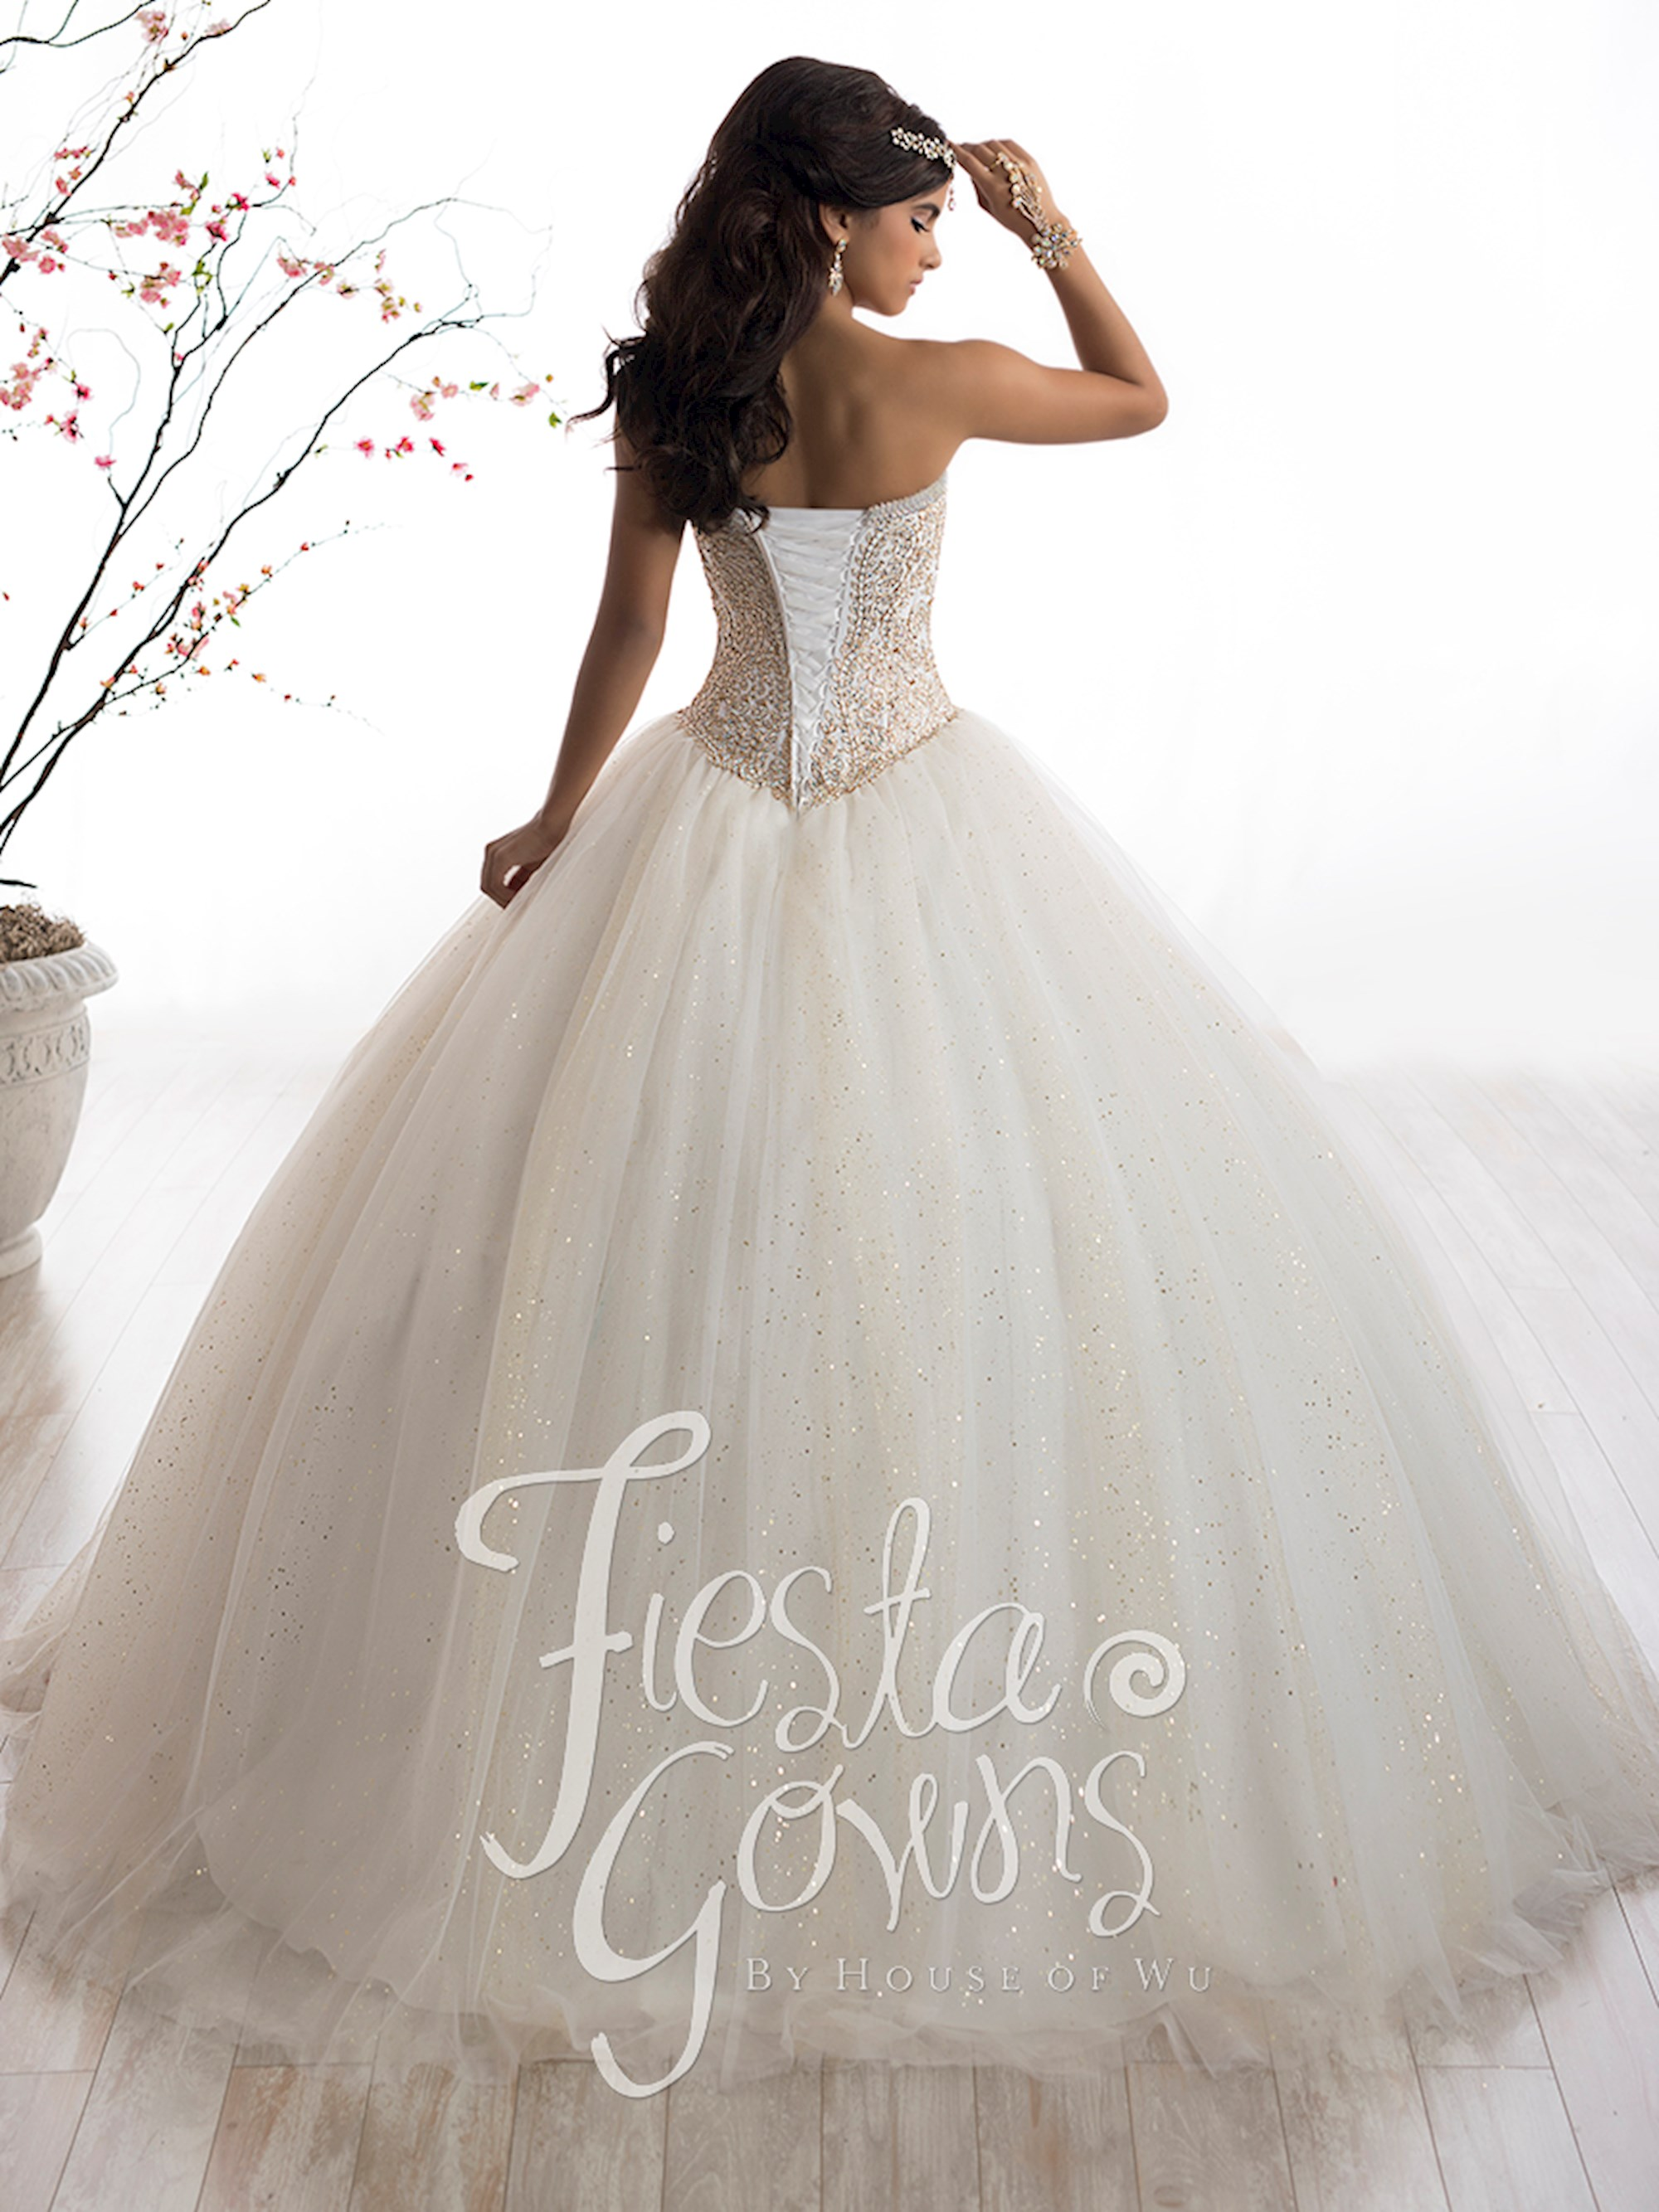 Fiesta Gowns - 56328 | Synchronicity Boutique